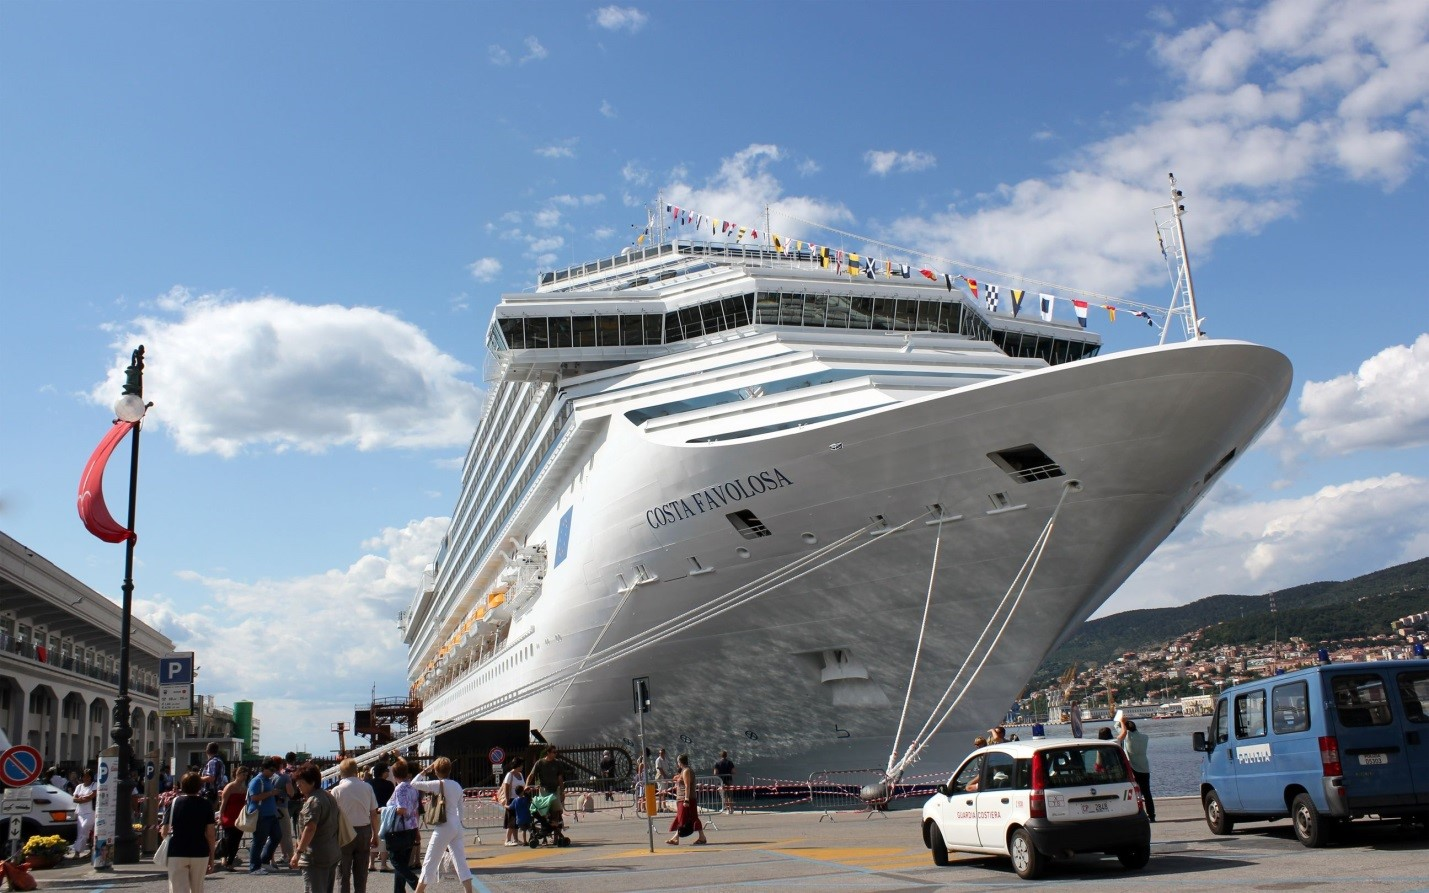 5 Tips for Shore Excursion Safety